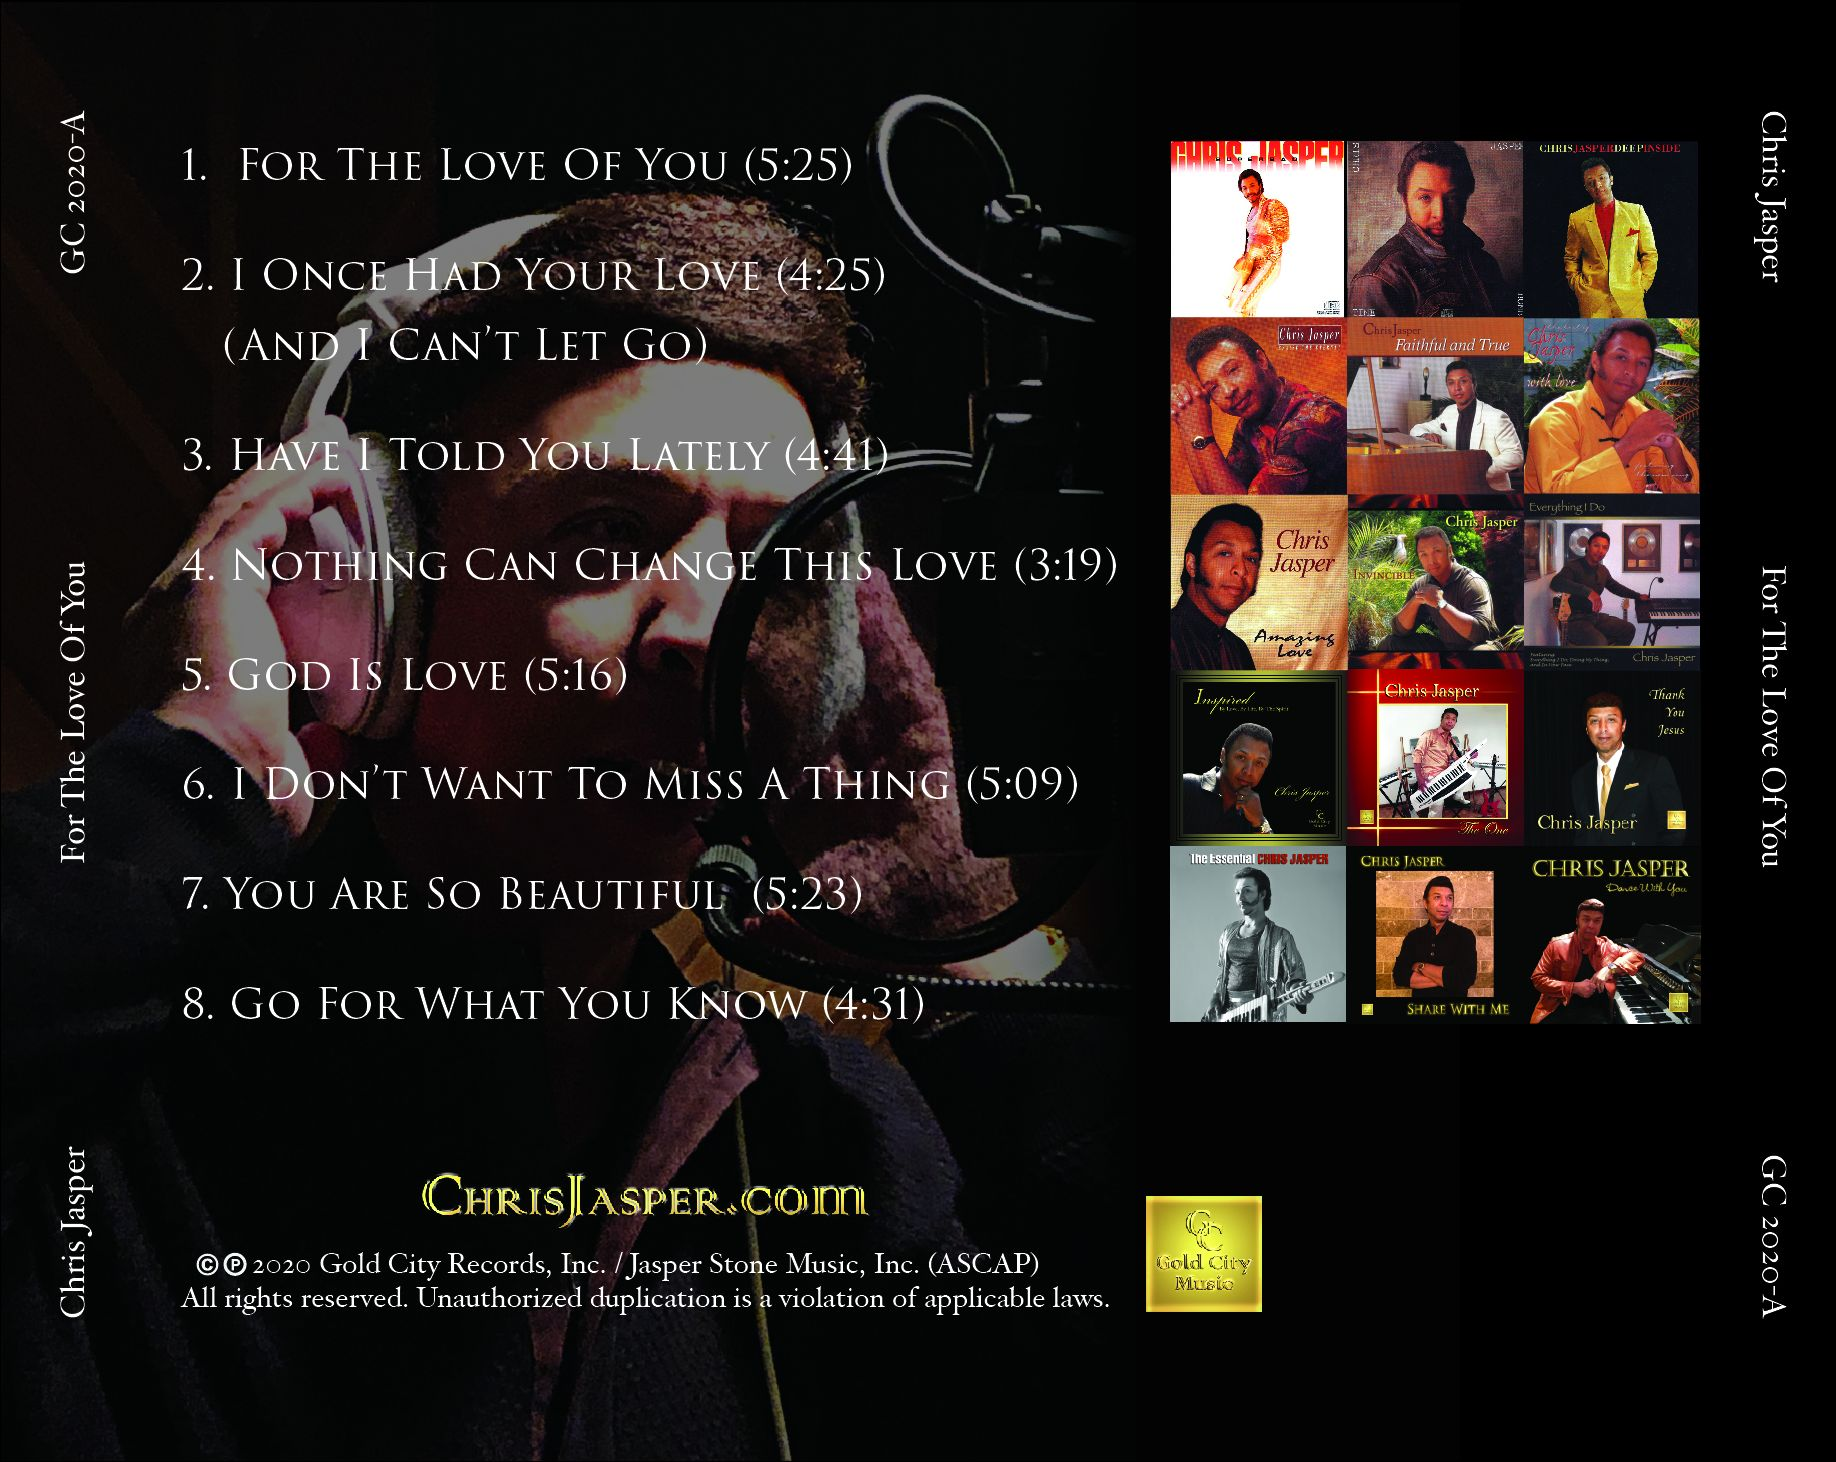 For The Love Of You CD